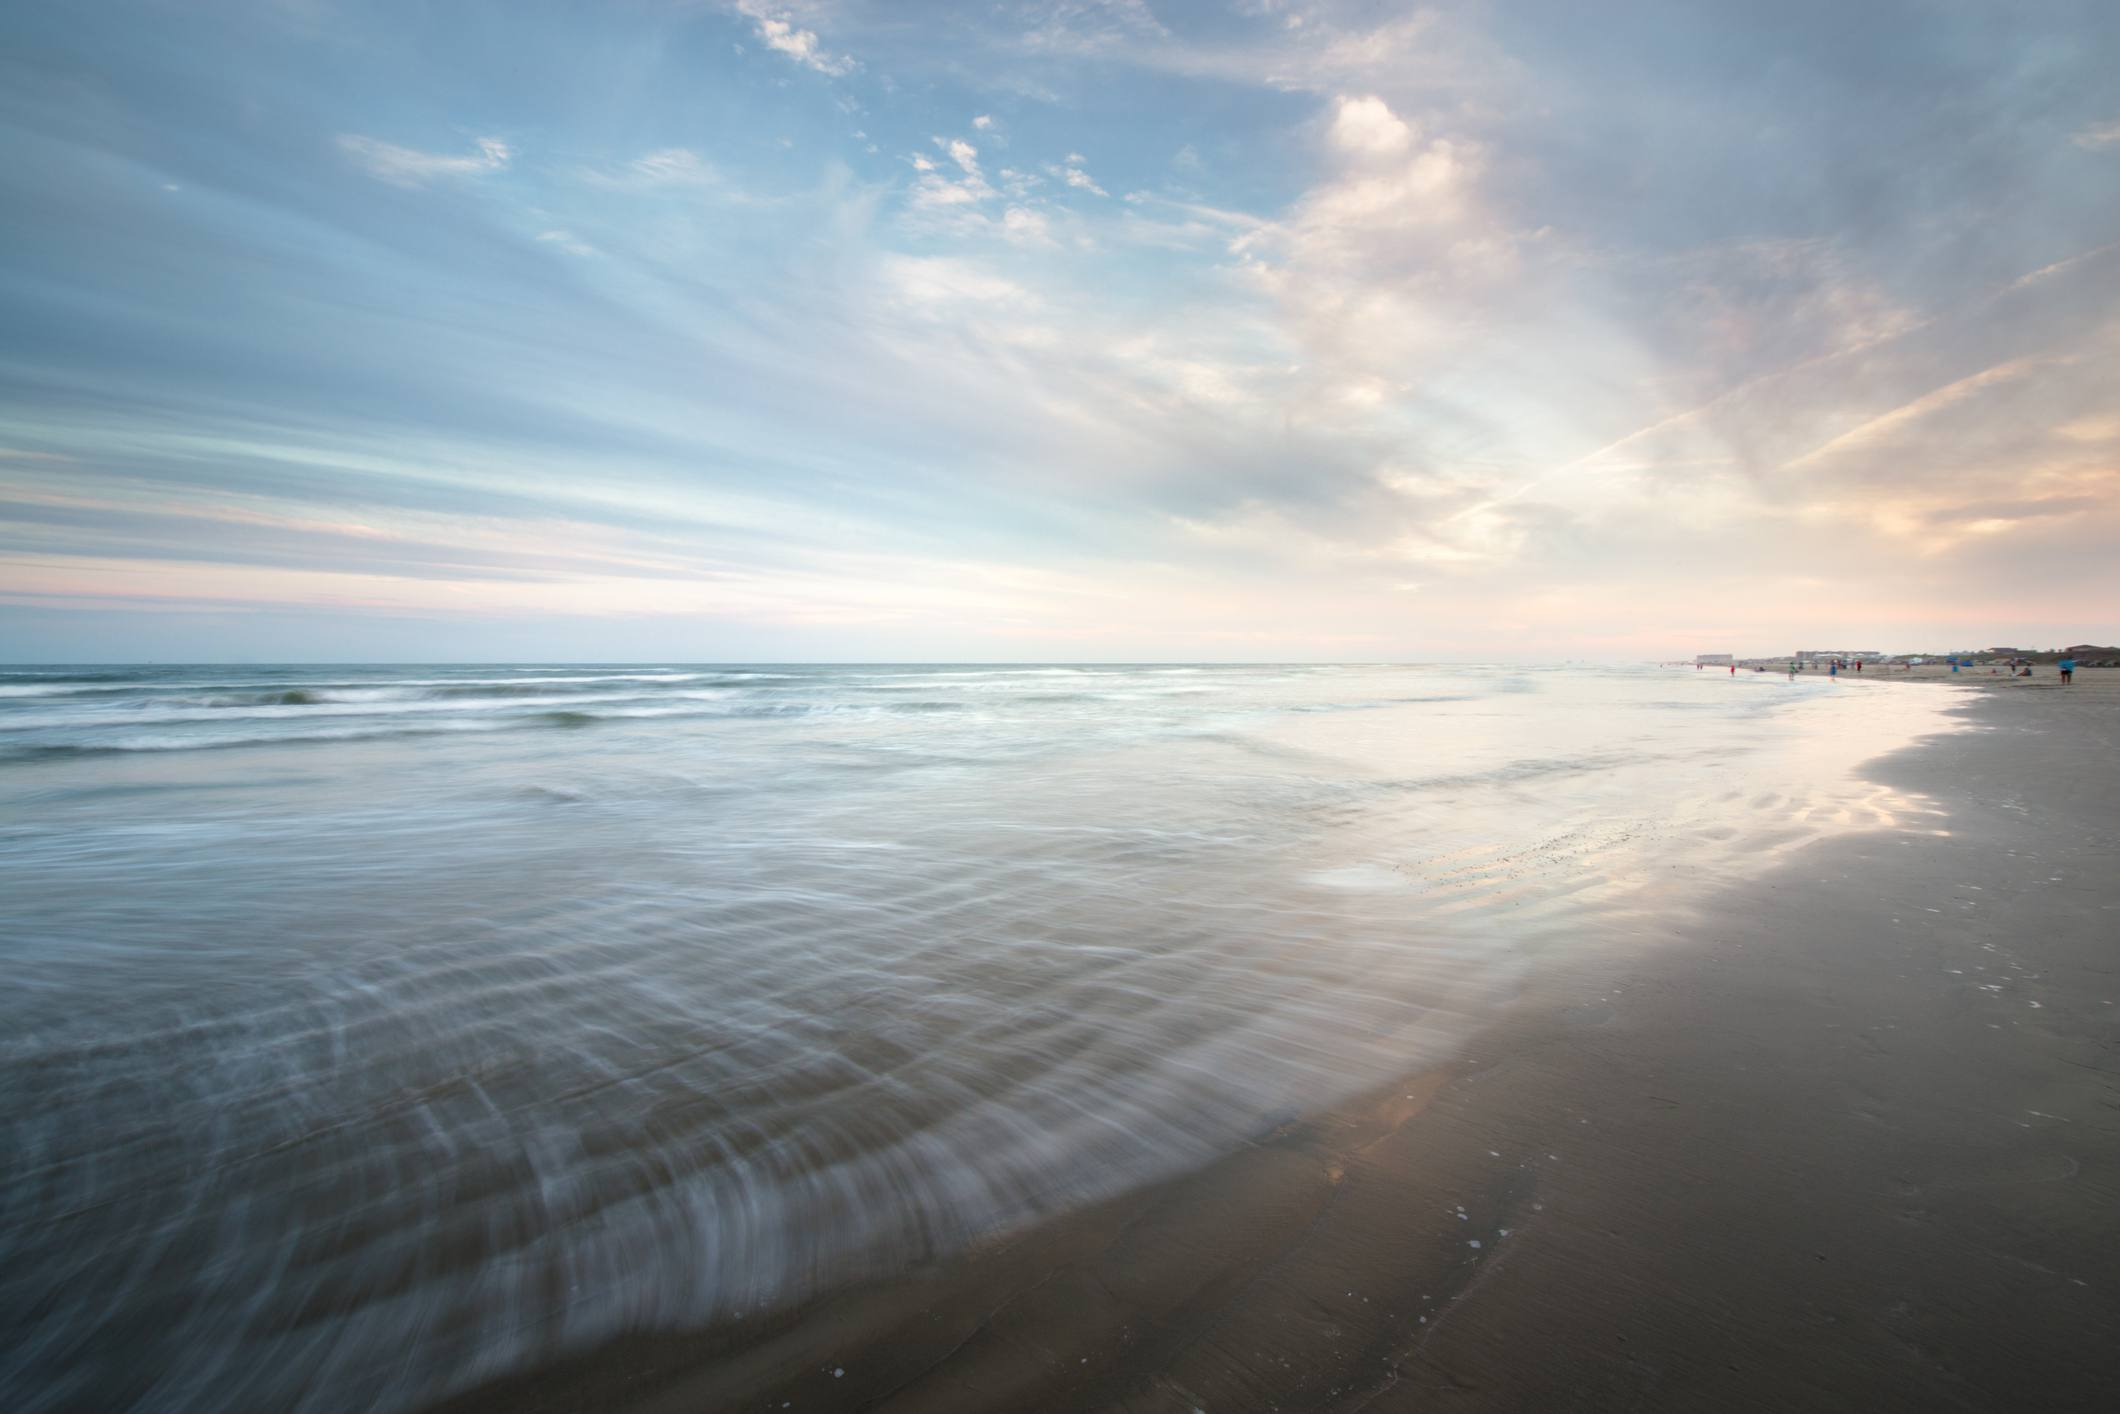 Smooth water at the beach in Port Aransas at sunset, Texas, USA